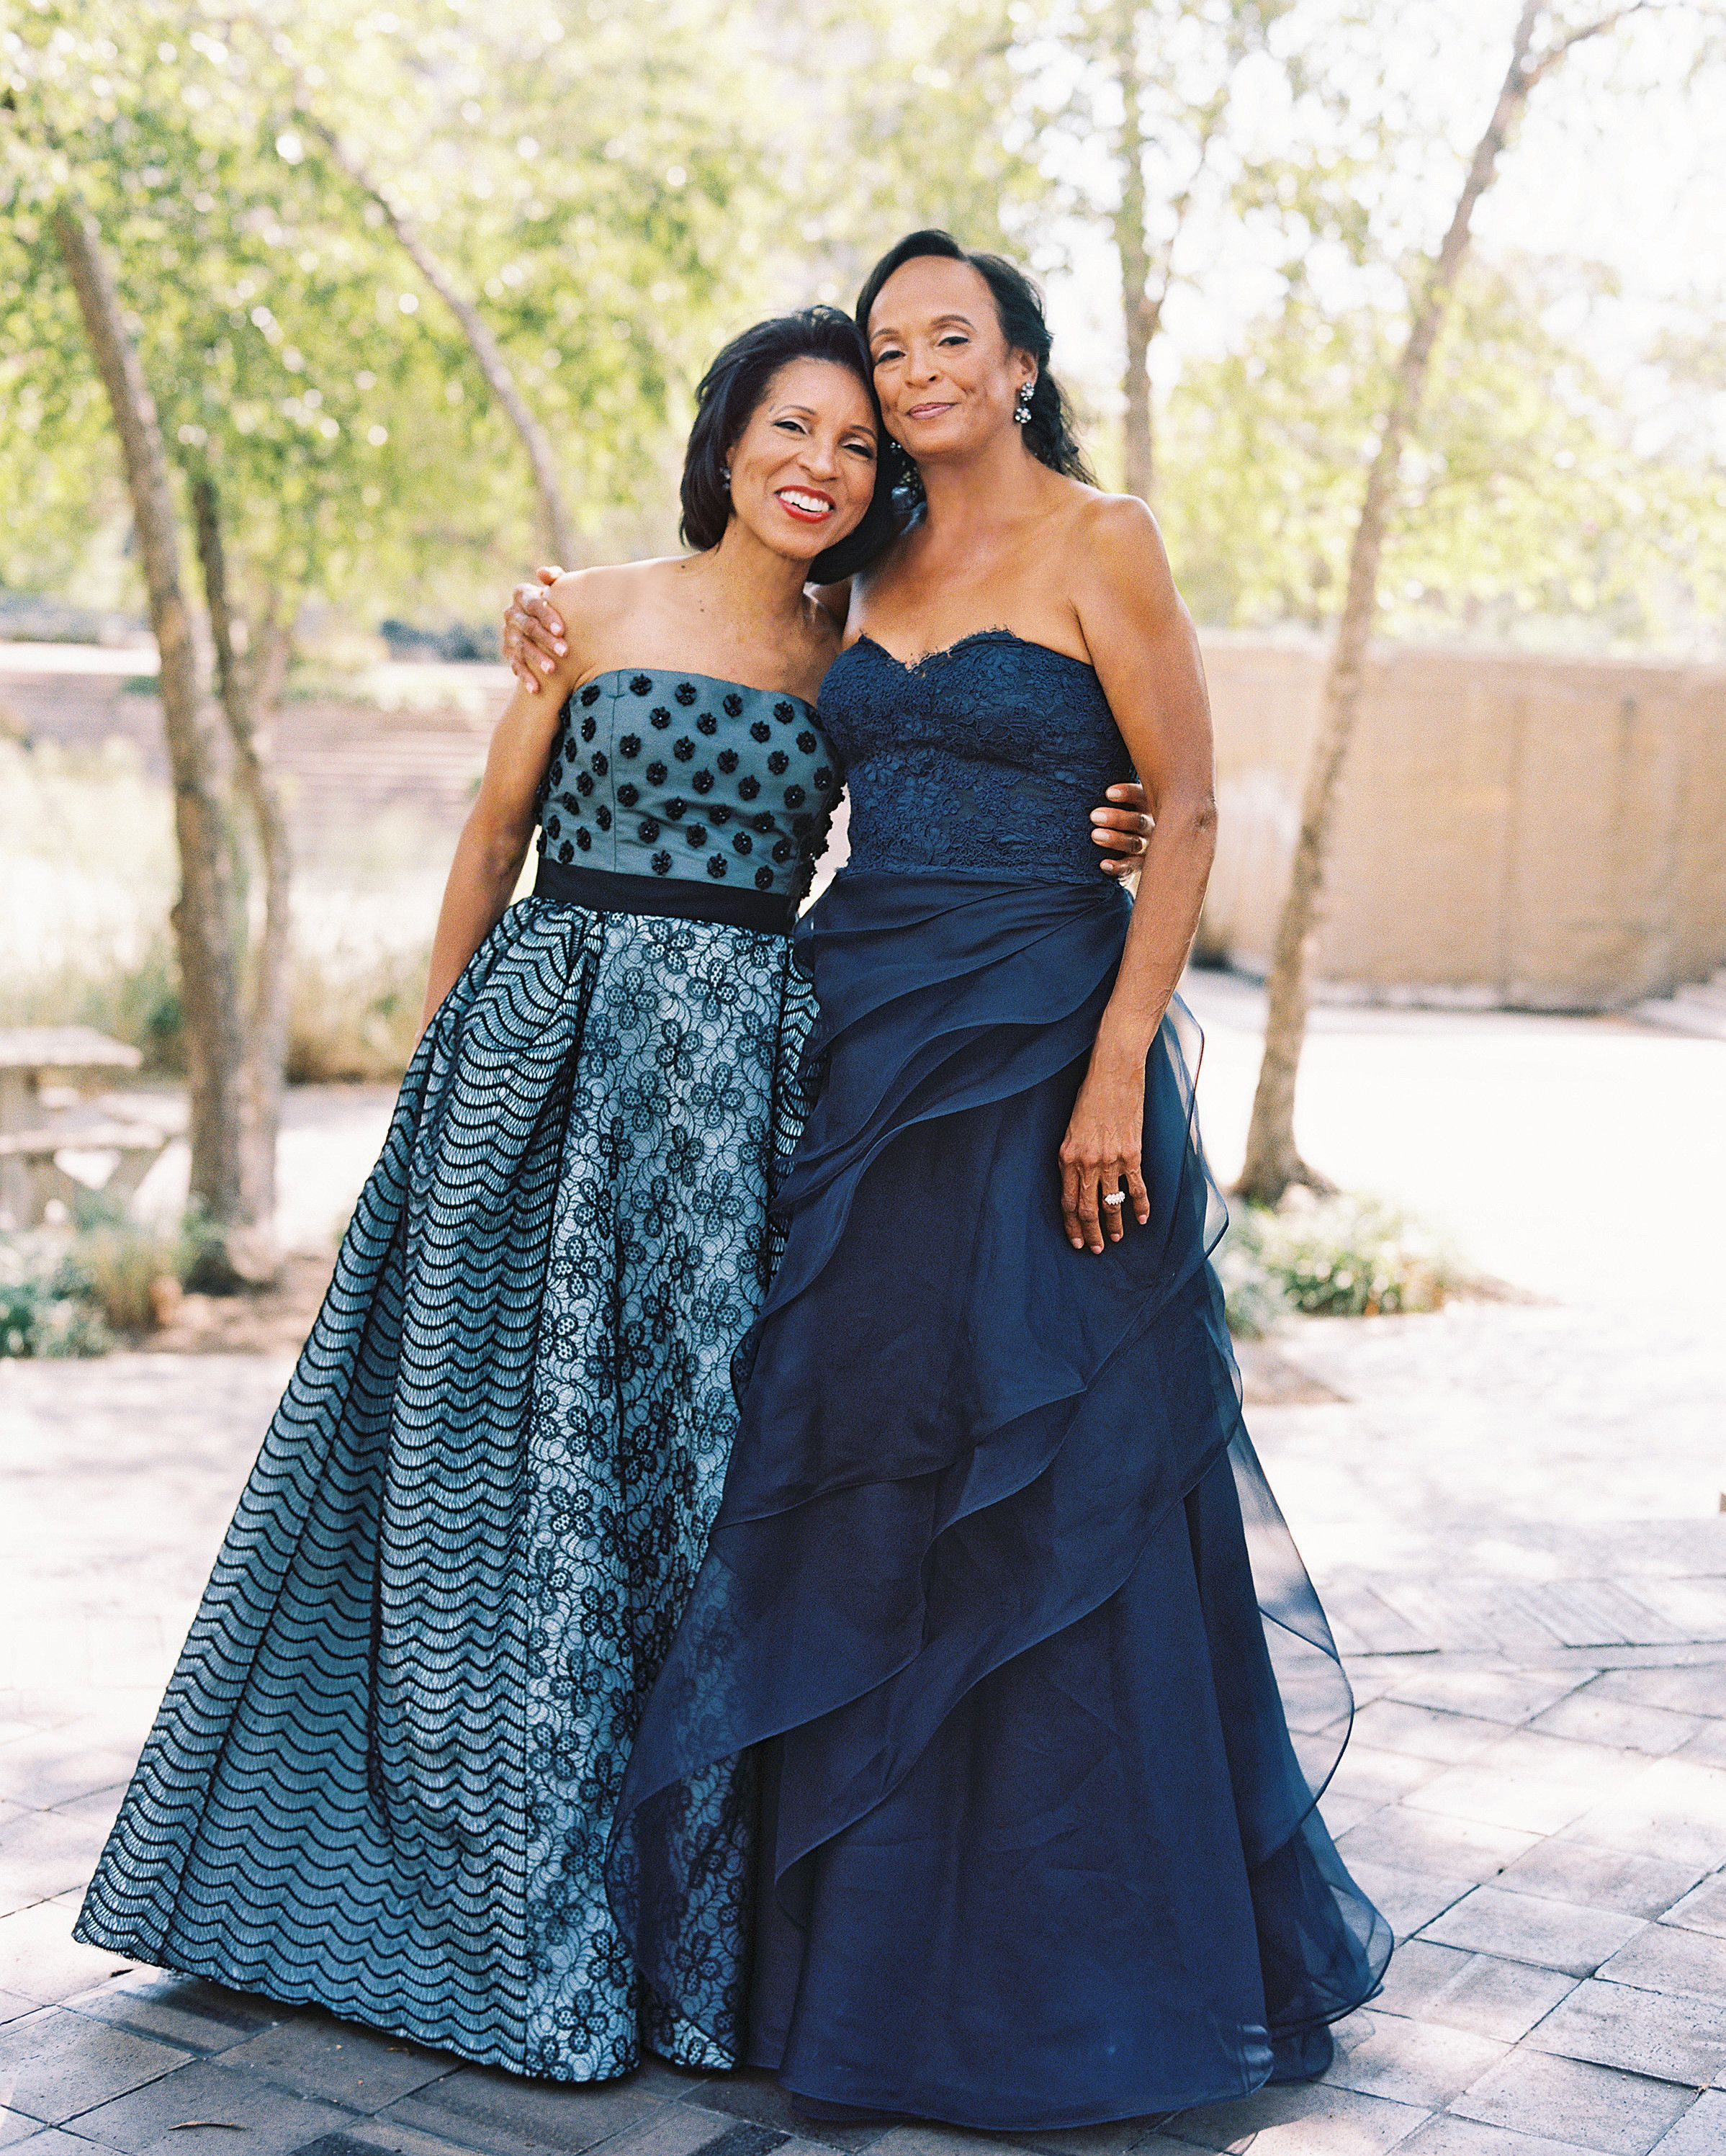 A Comprehensive Guide To Wedding Guest Attire